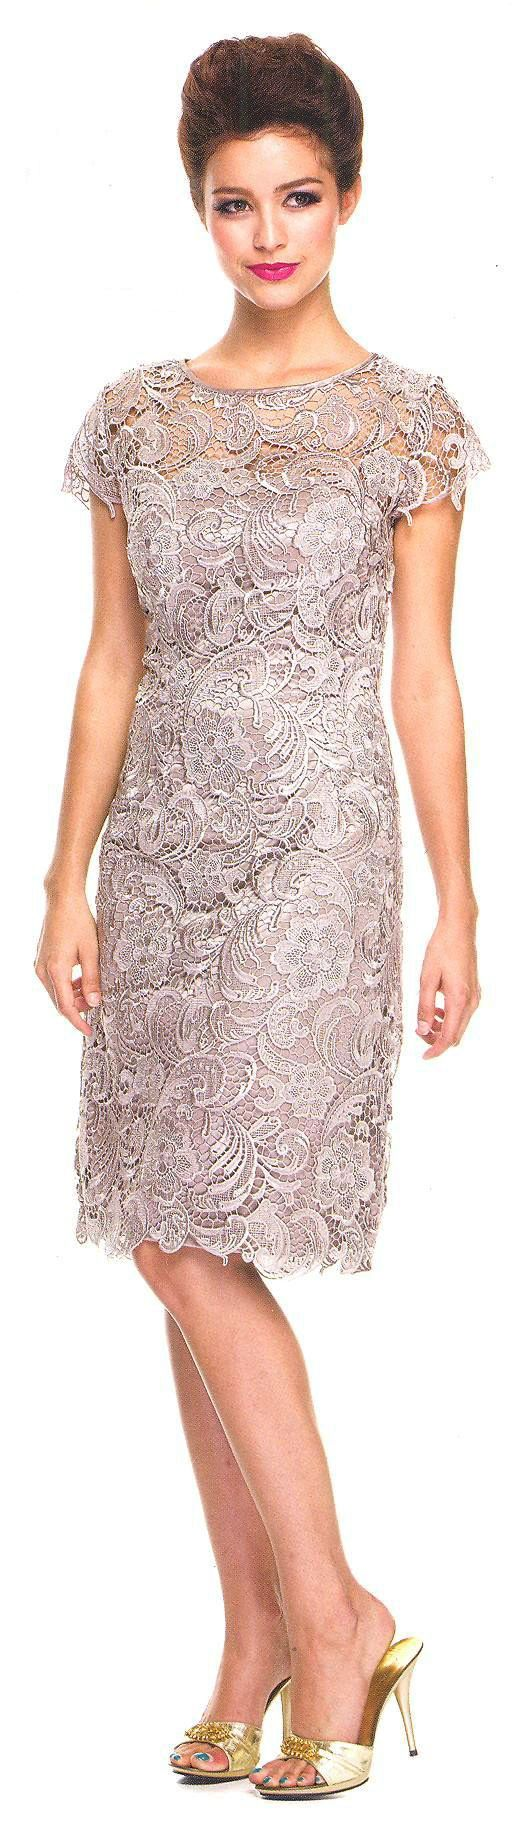 MOB DressesEvening Dresses under $1005064The Lace Your Choose!(sizes to 4X):